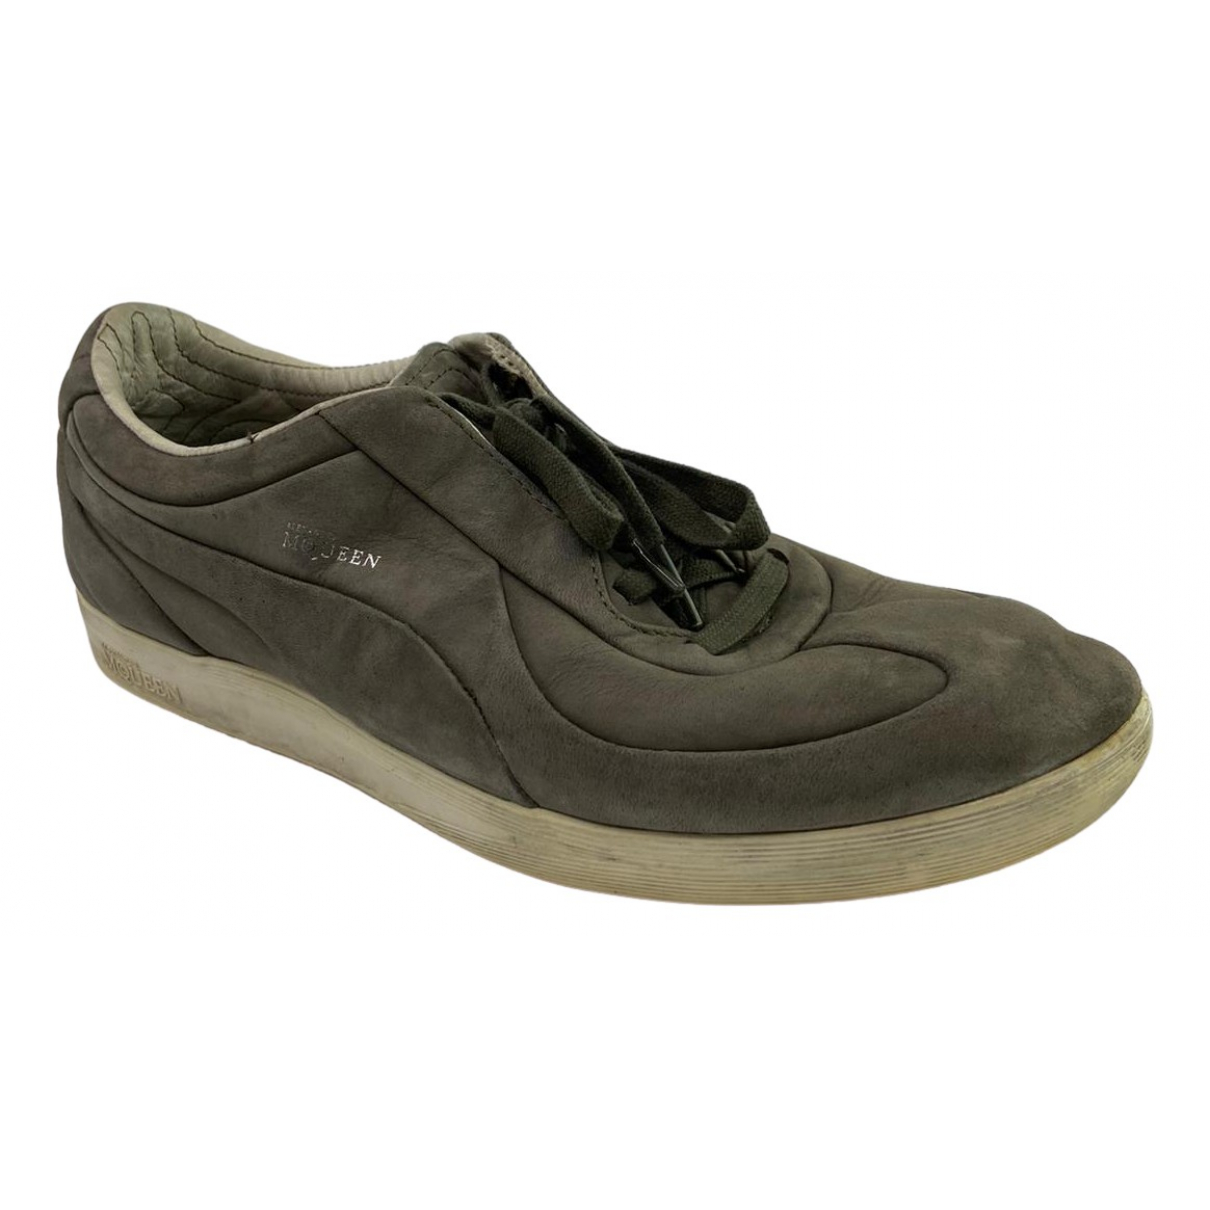 Alexander Mcqueen For Puma \N Brown Leather Trainers for Men 8 US